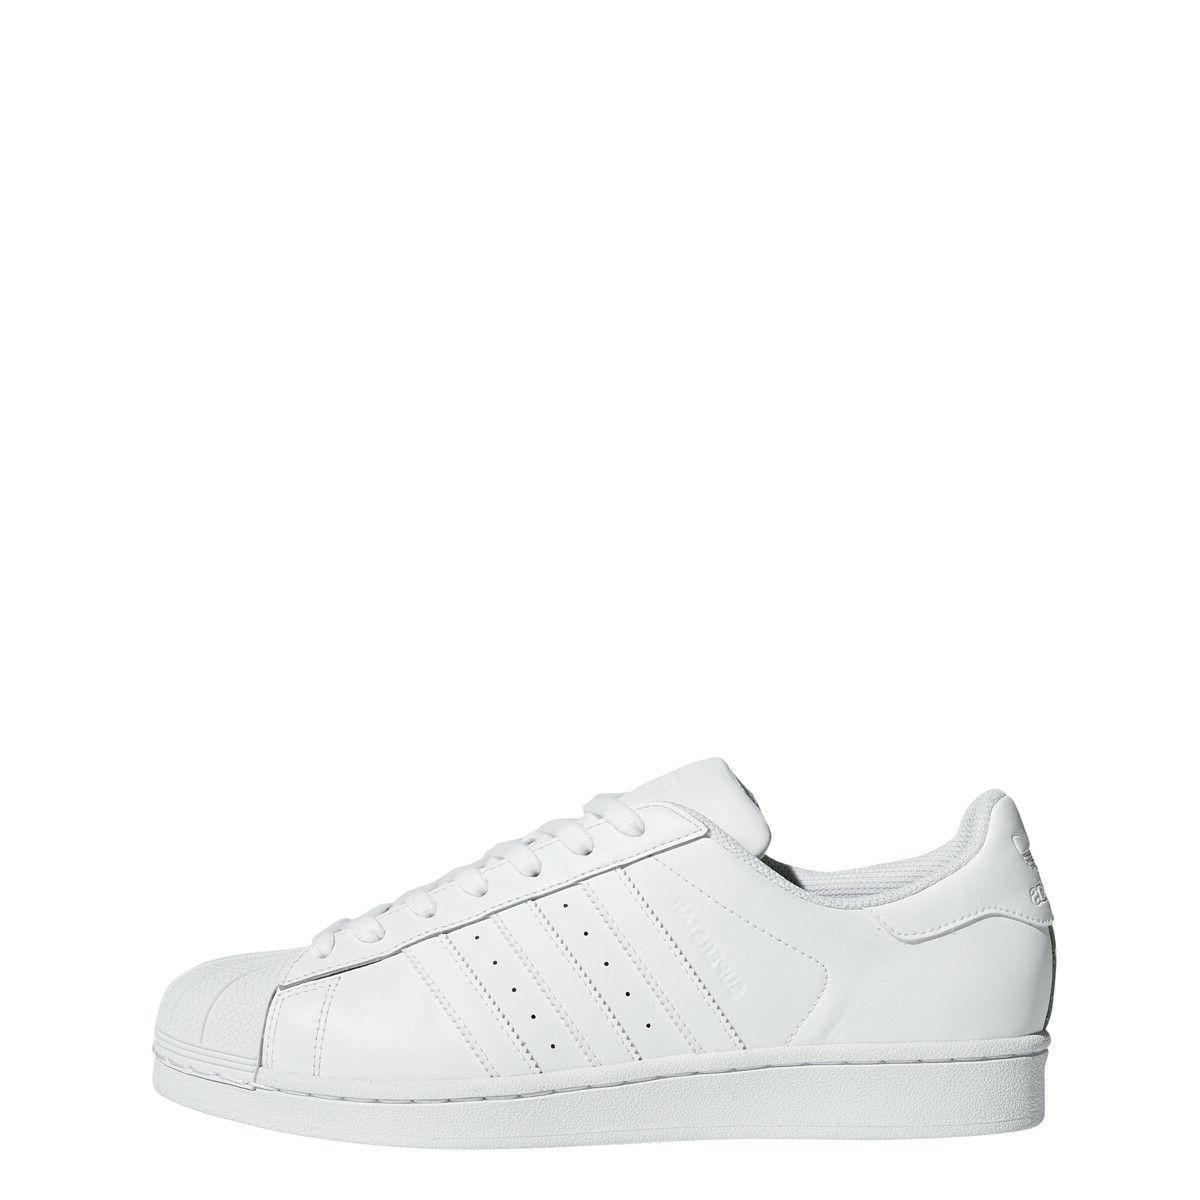 originals men s superstar foundation sneaker all